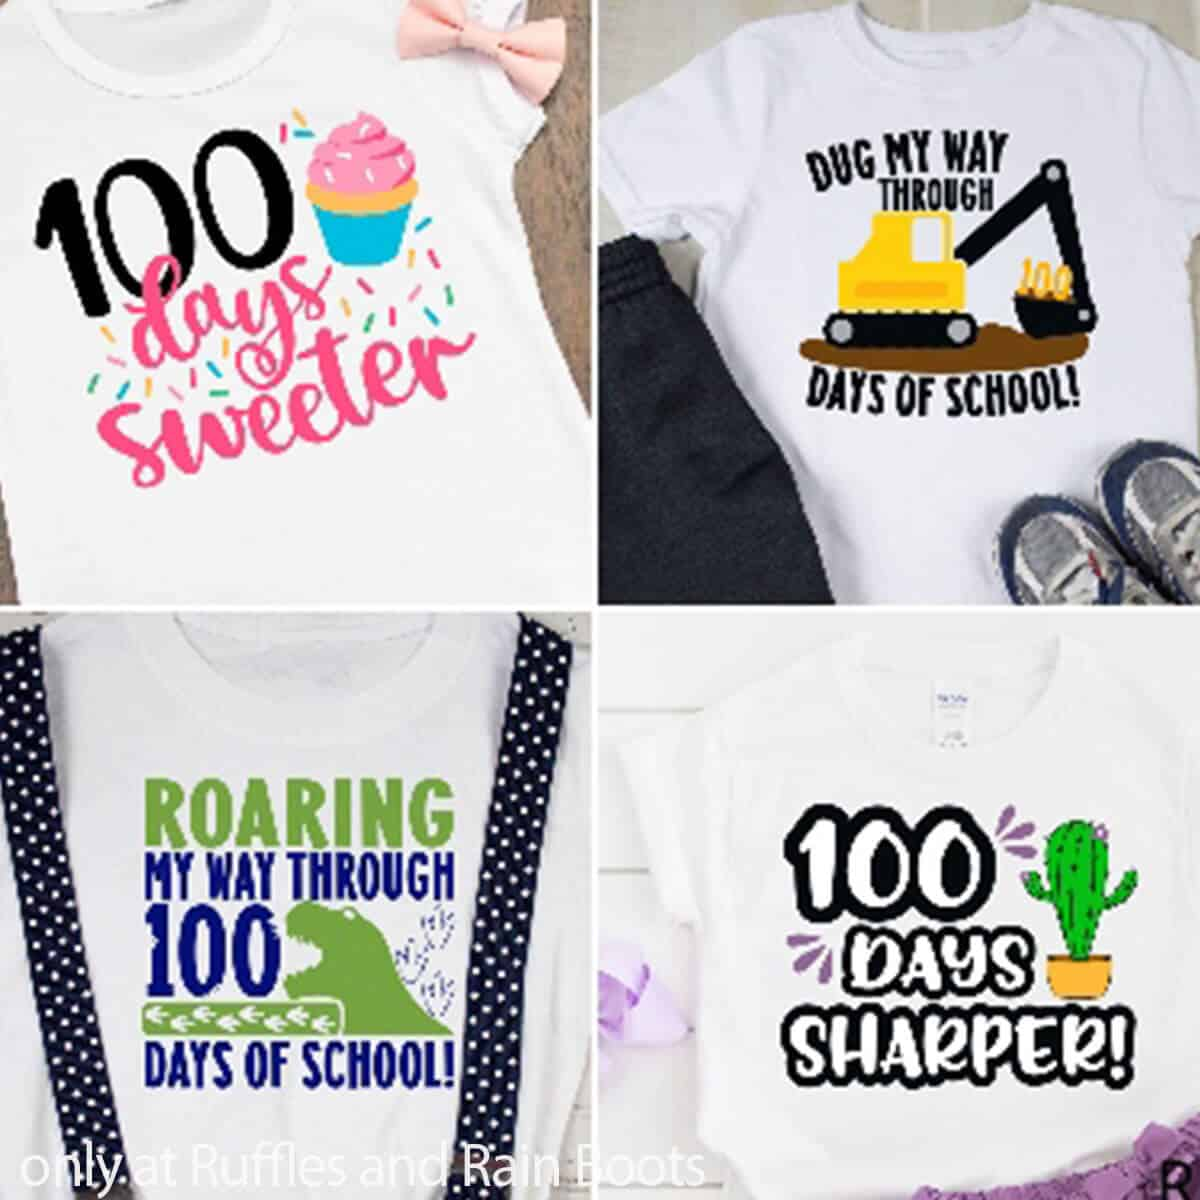 photo collage of 100 days of school svgs for kids shirts